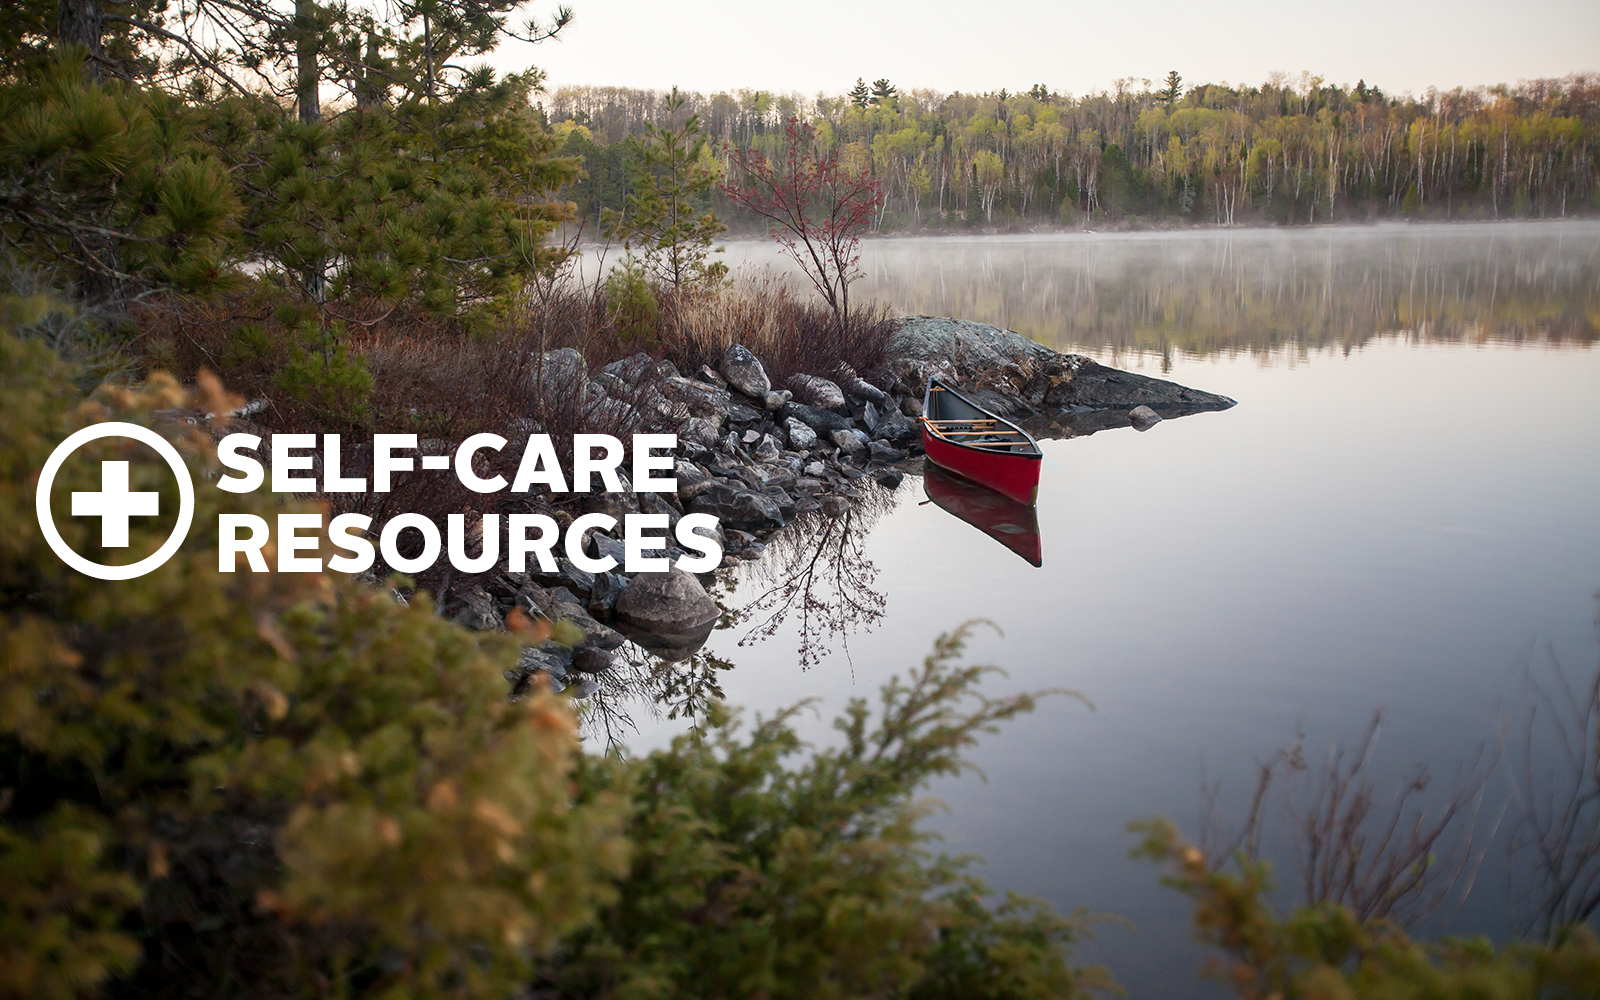 Canoe in water - Resources for Self-Care